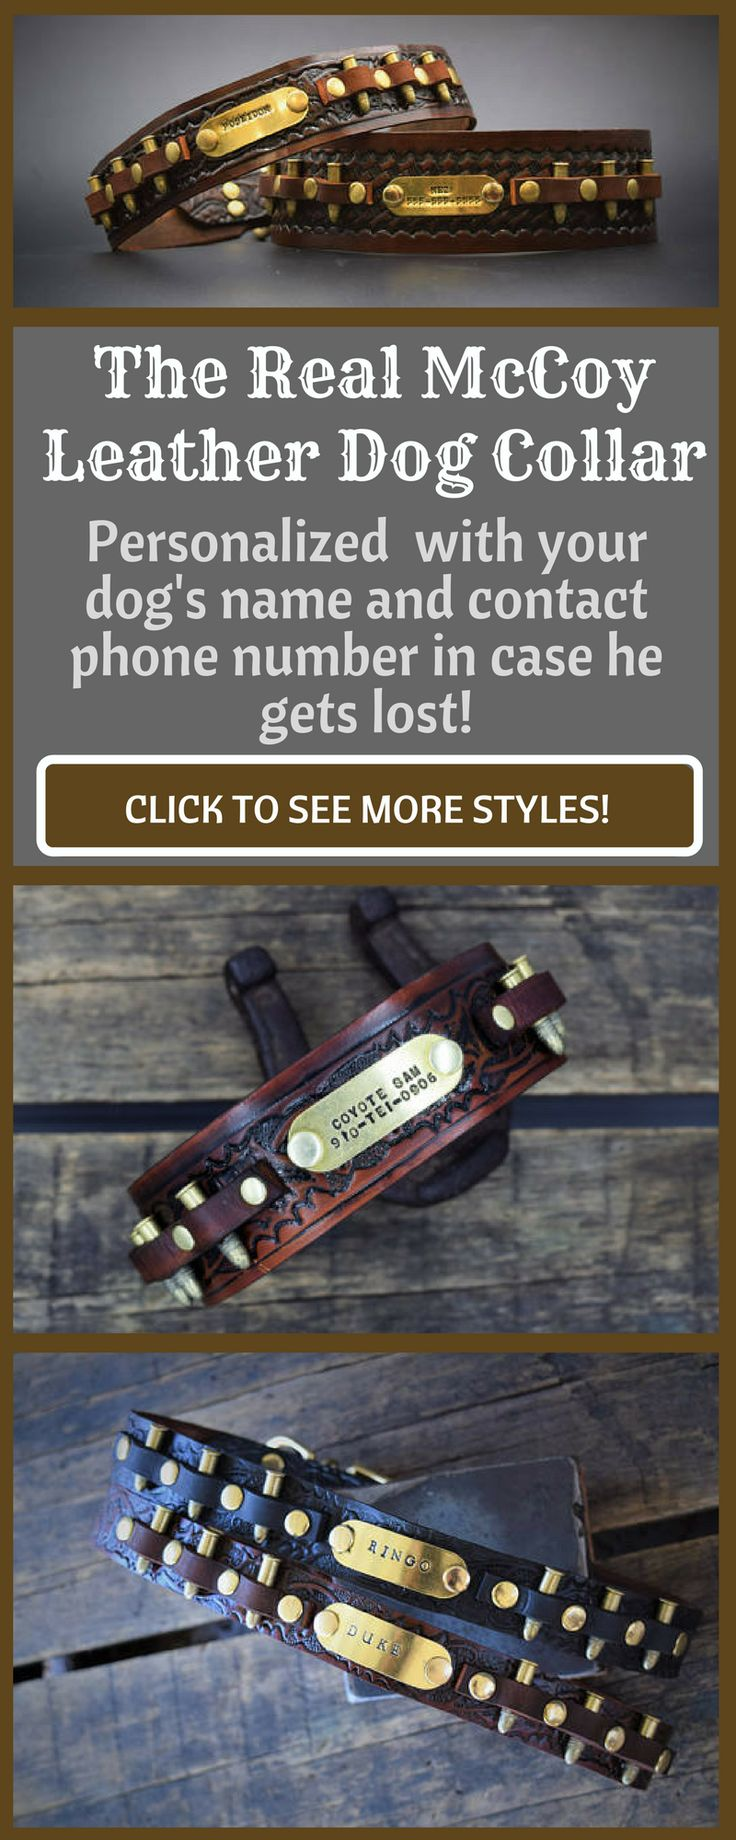 The Real McCoy personalized leather dog collars! These are perfect if your dogs are always breaking off their name tags! Personalize with dog's name and your contact number in case they get lost! #ad #dogcollar #leatherdogcollars #personalizeddogcollars #dogcollarshandmade